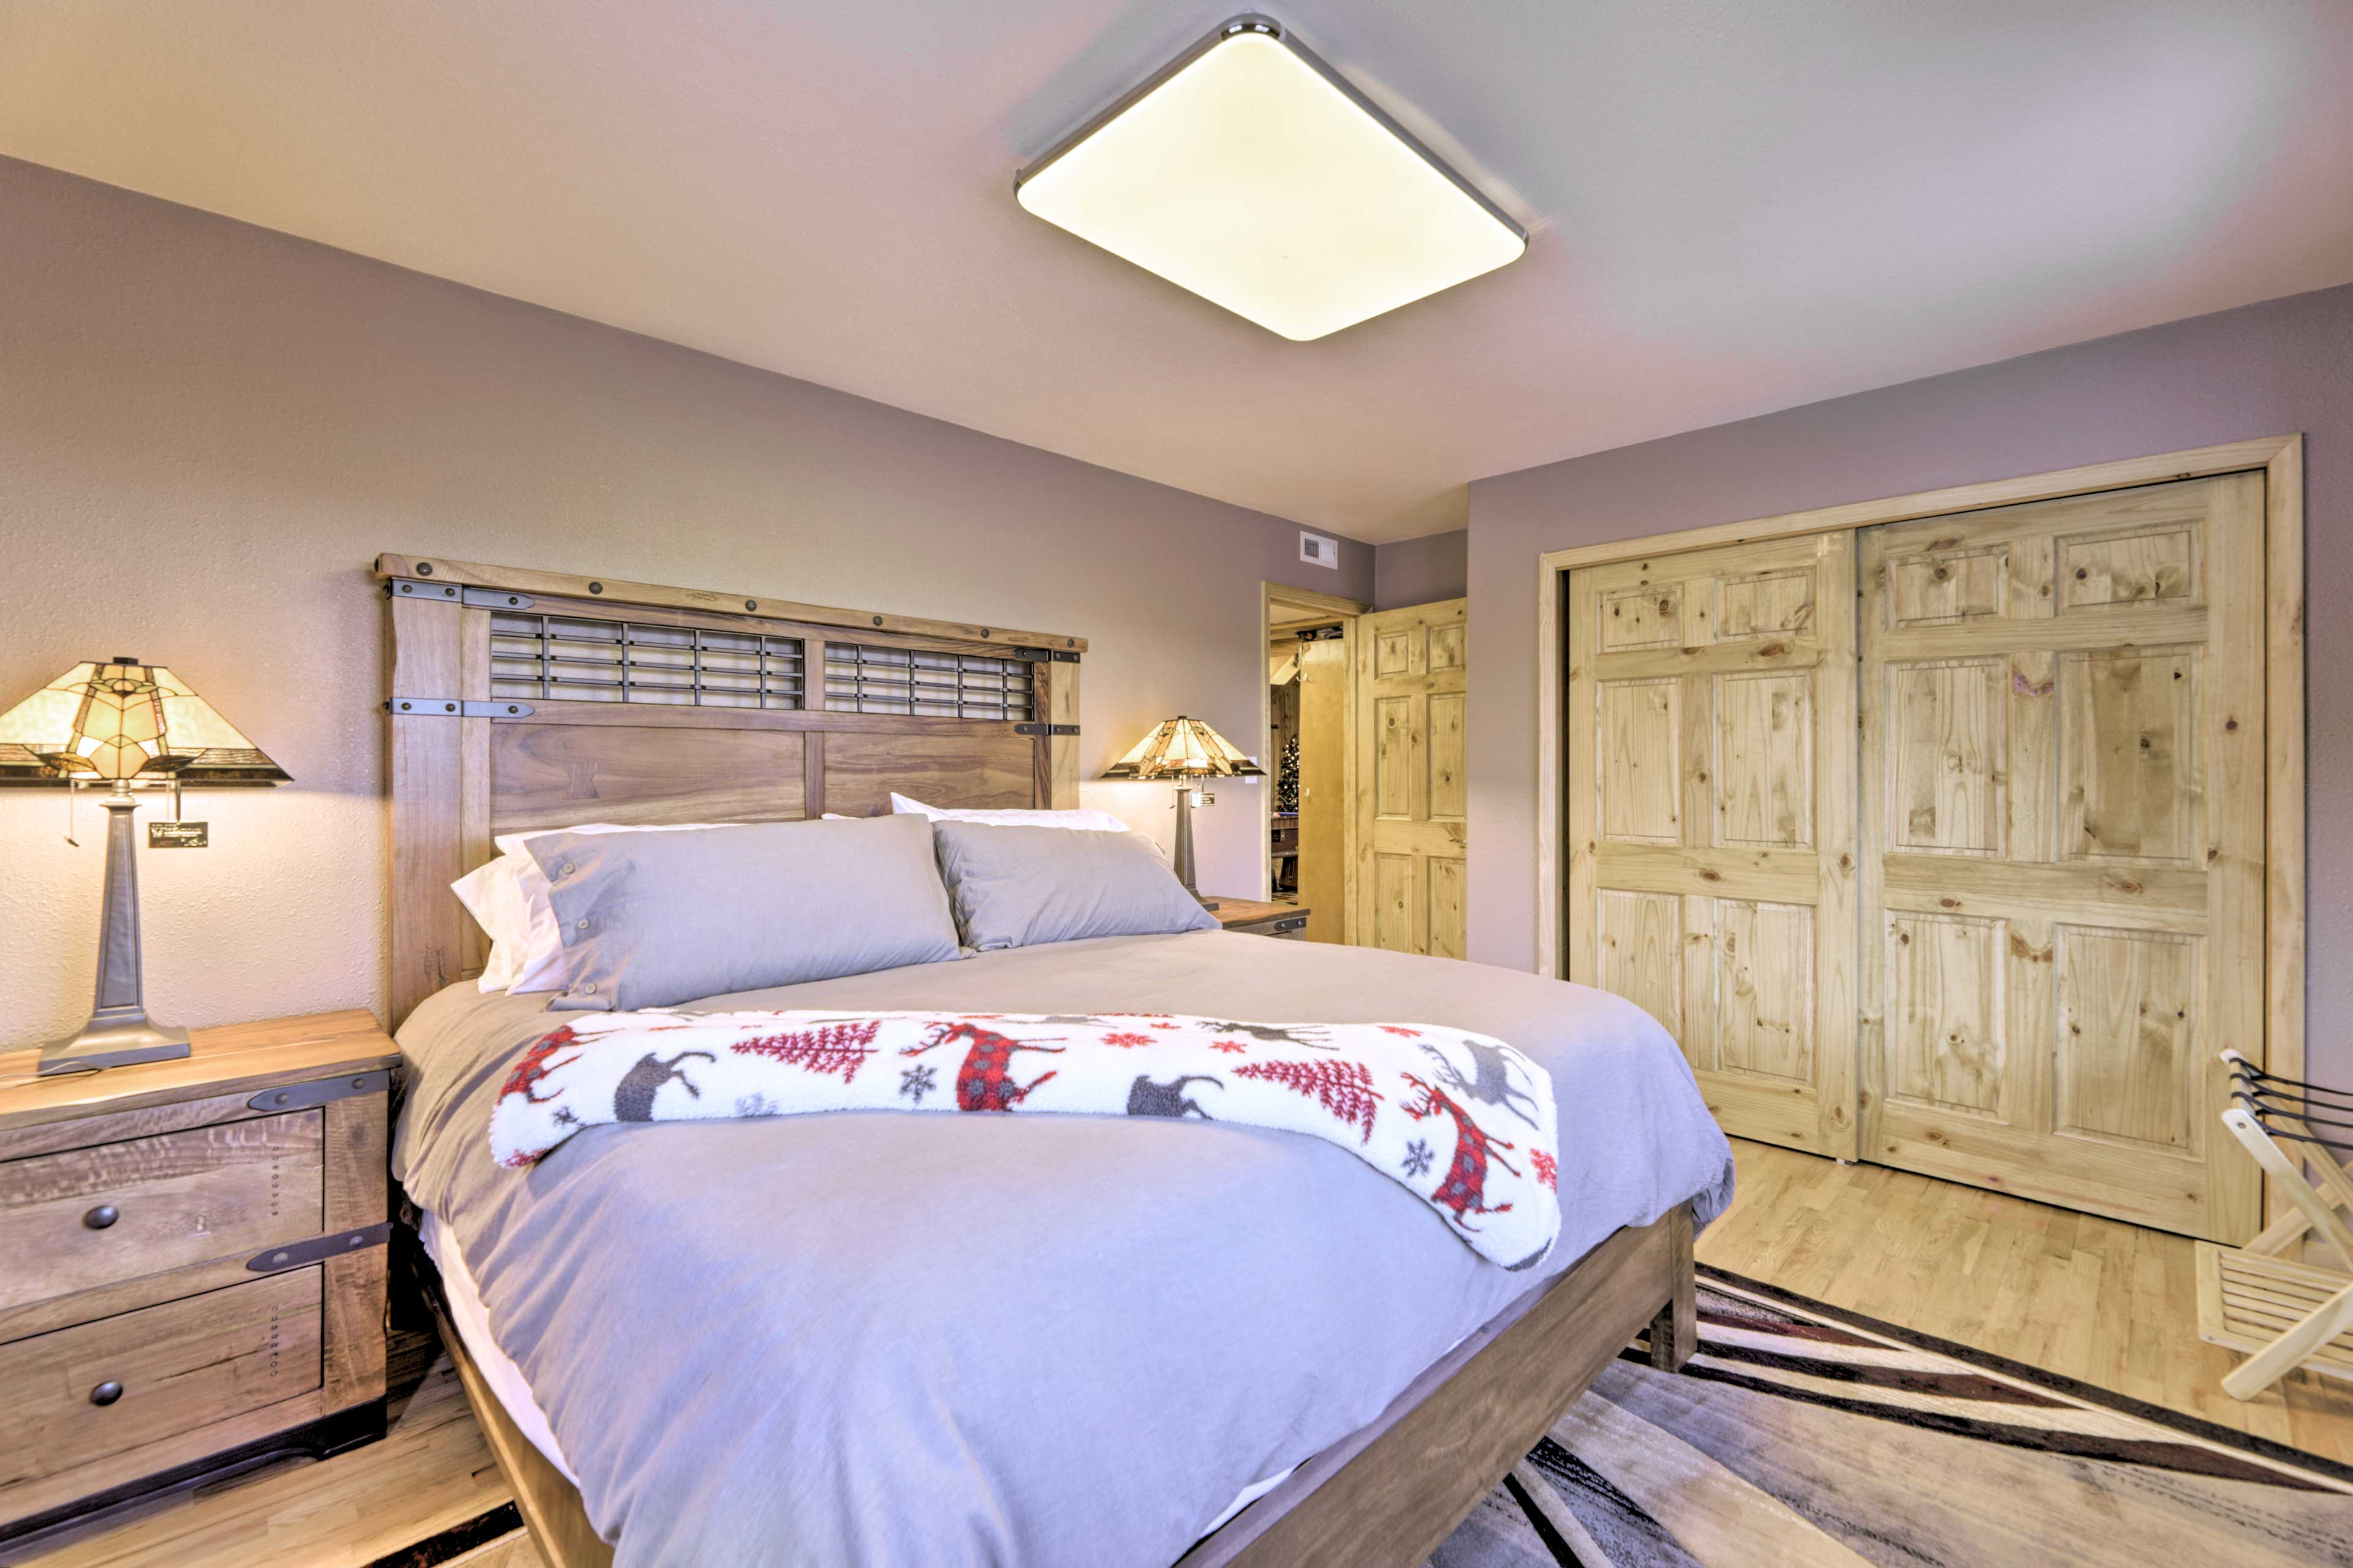 The second bedroom also features a king bed.